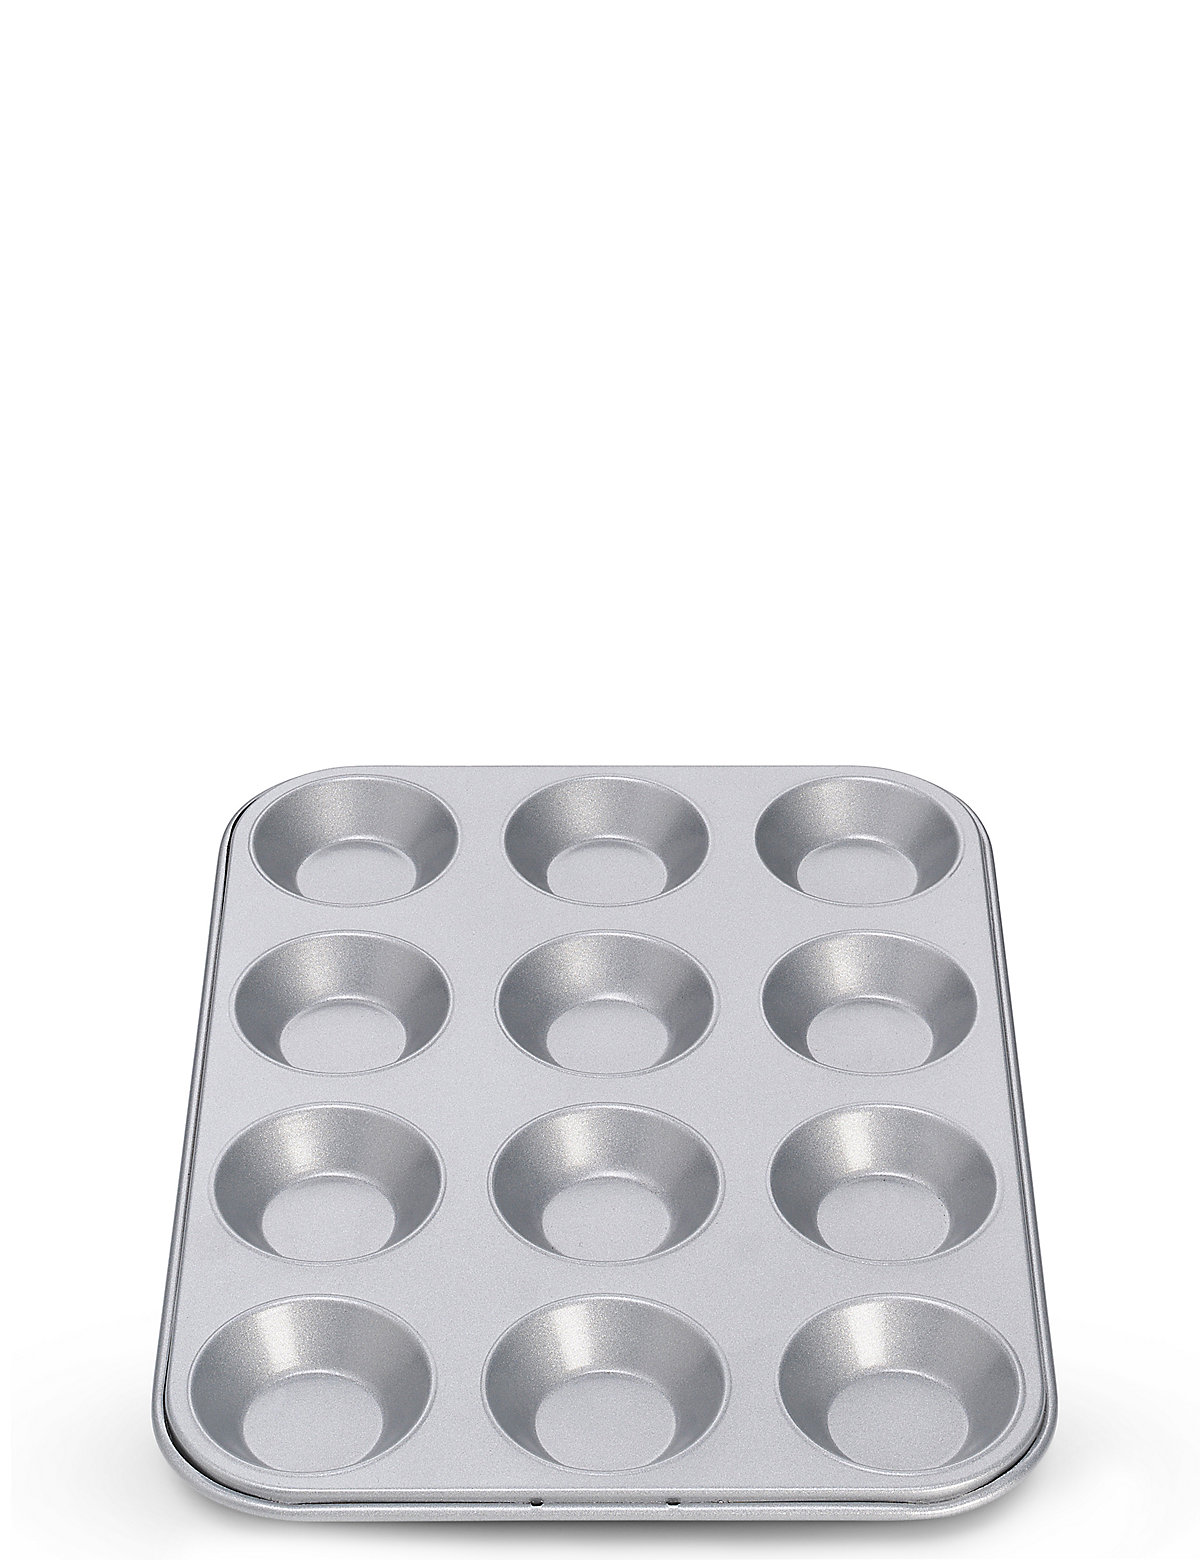 Image of 12 Cup Non-Stick Bun Tray